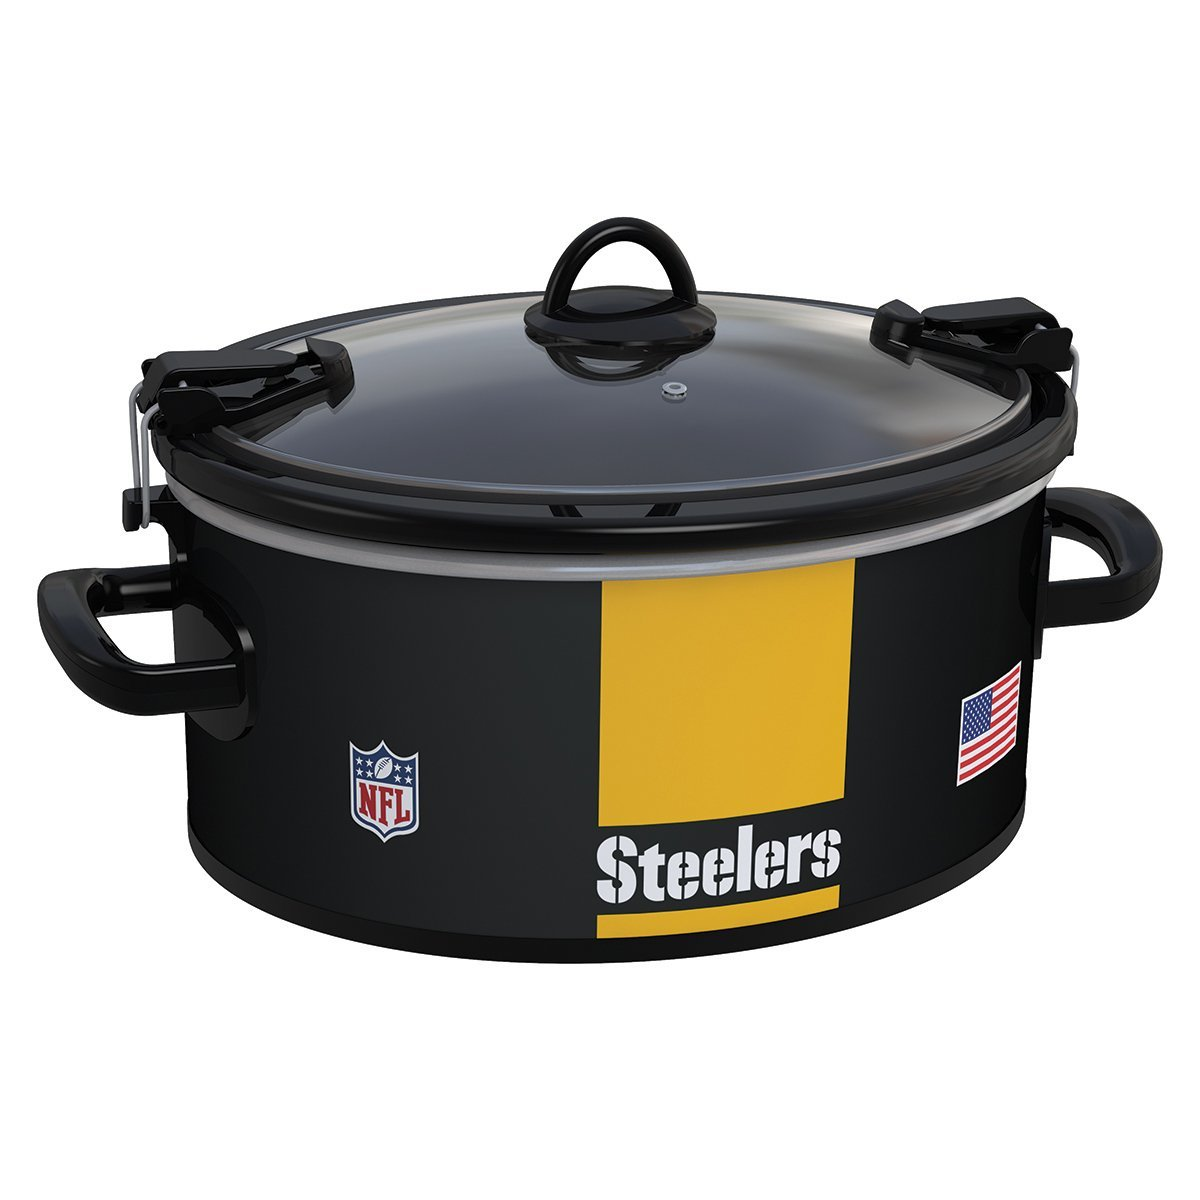 Crock Pot 6 Quart Cook U0026 Carry Slow Cooker, Pittsburgh Steelers  (SCCPNFL600 PS)   Walmart.com